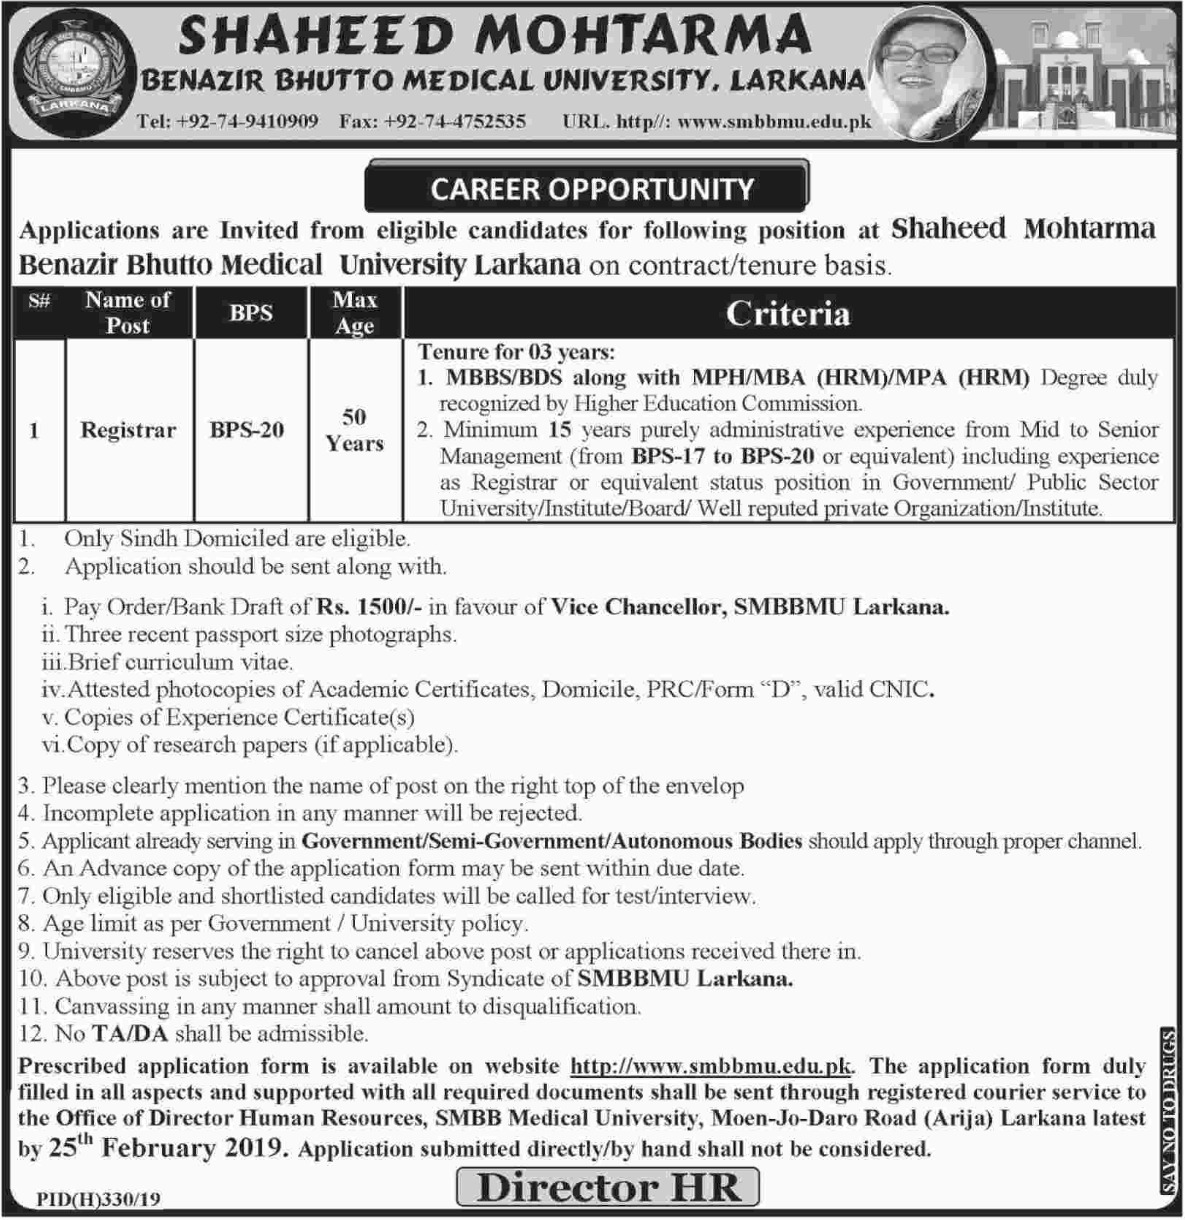 Shaheed Mohtarma Benazir Bhutto Medical University Larkana Jobs 2019 Sindh